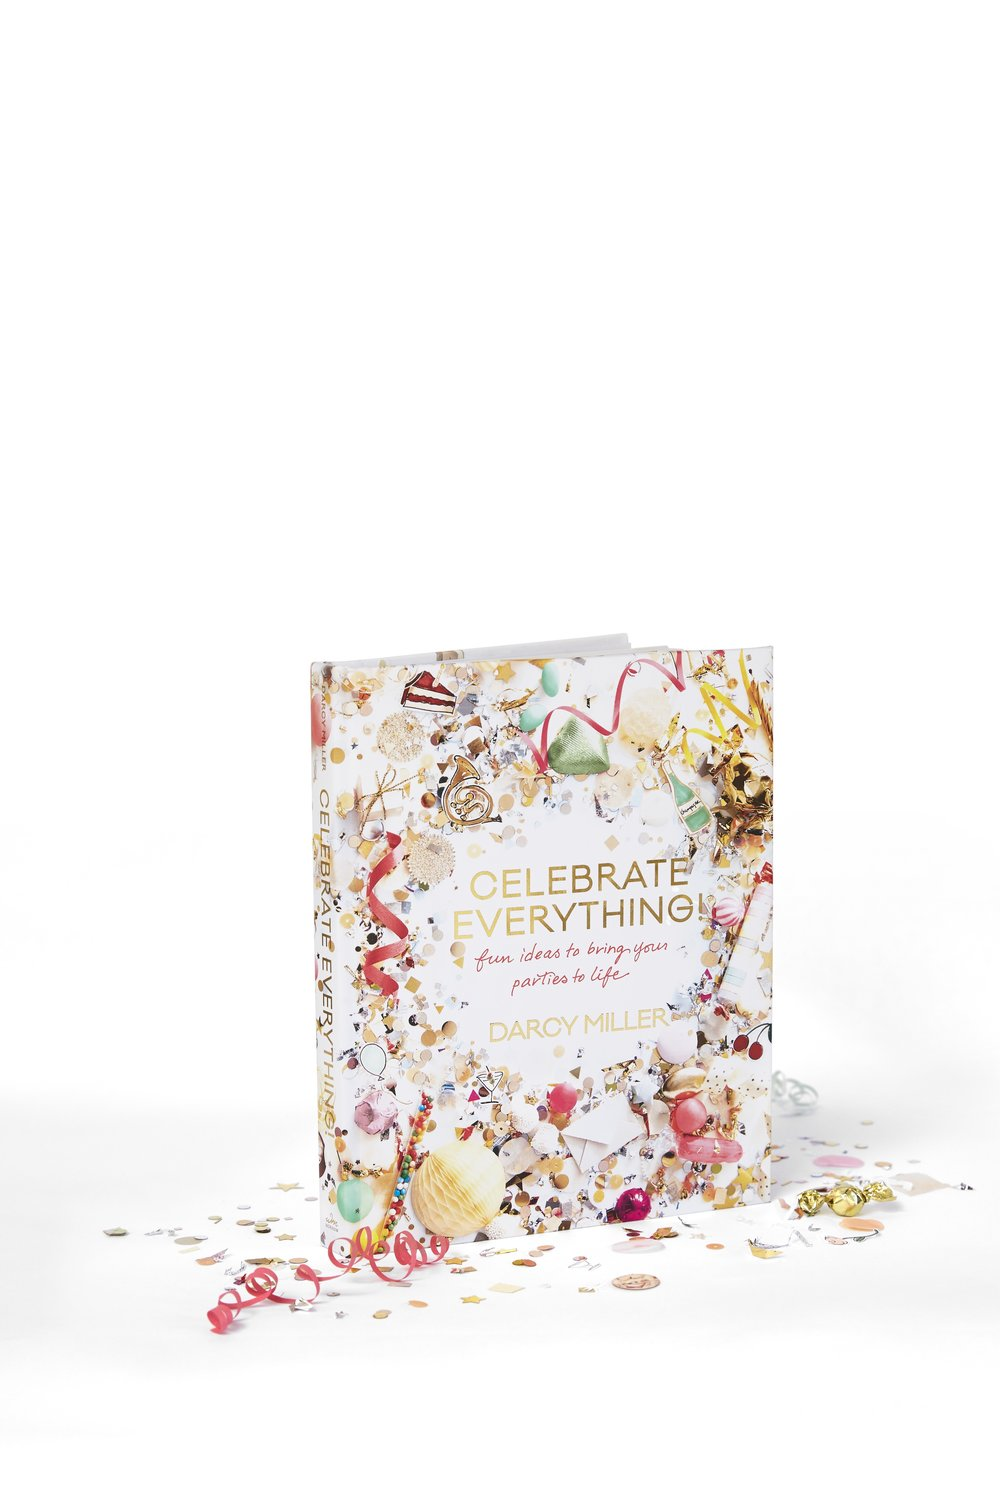 1502-celebrate-everything-book-cover copy.jpeg